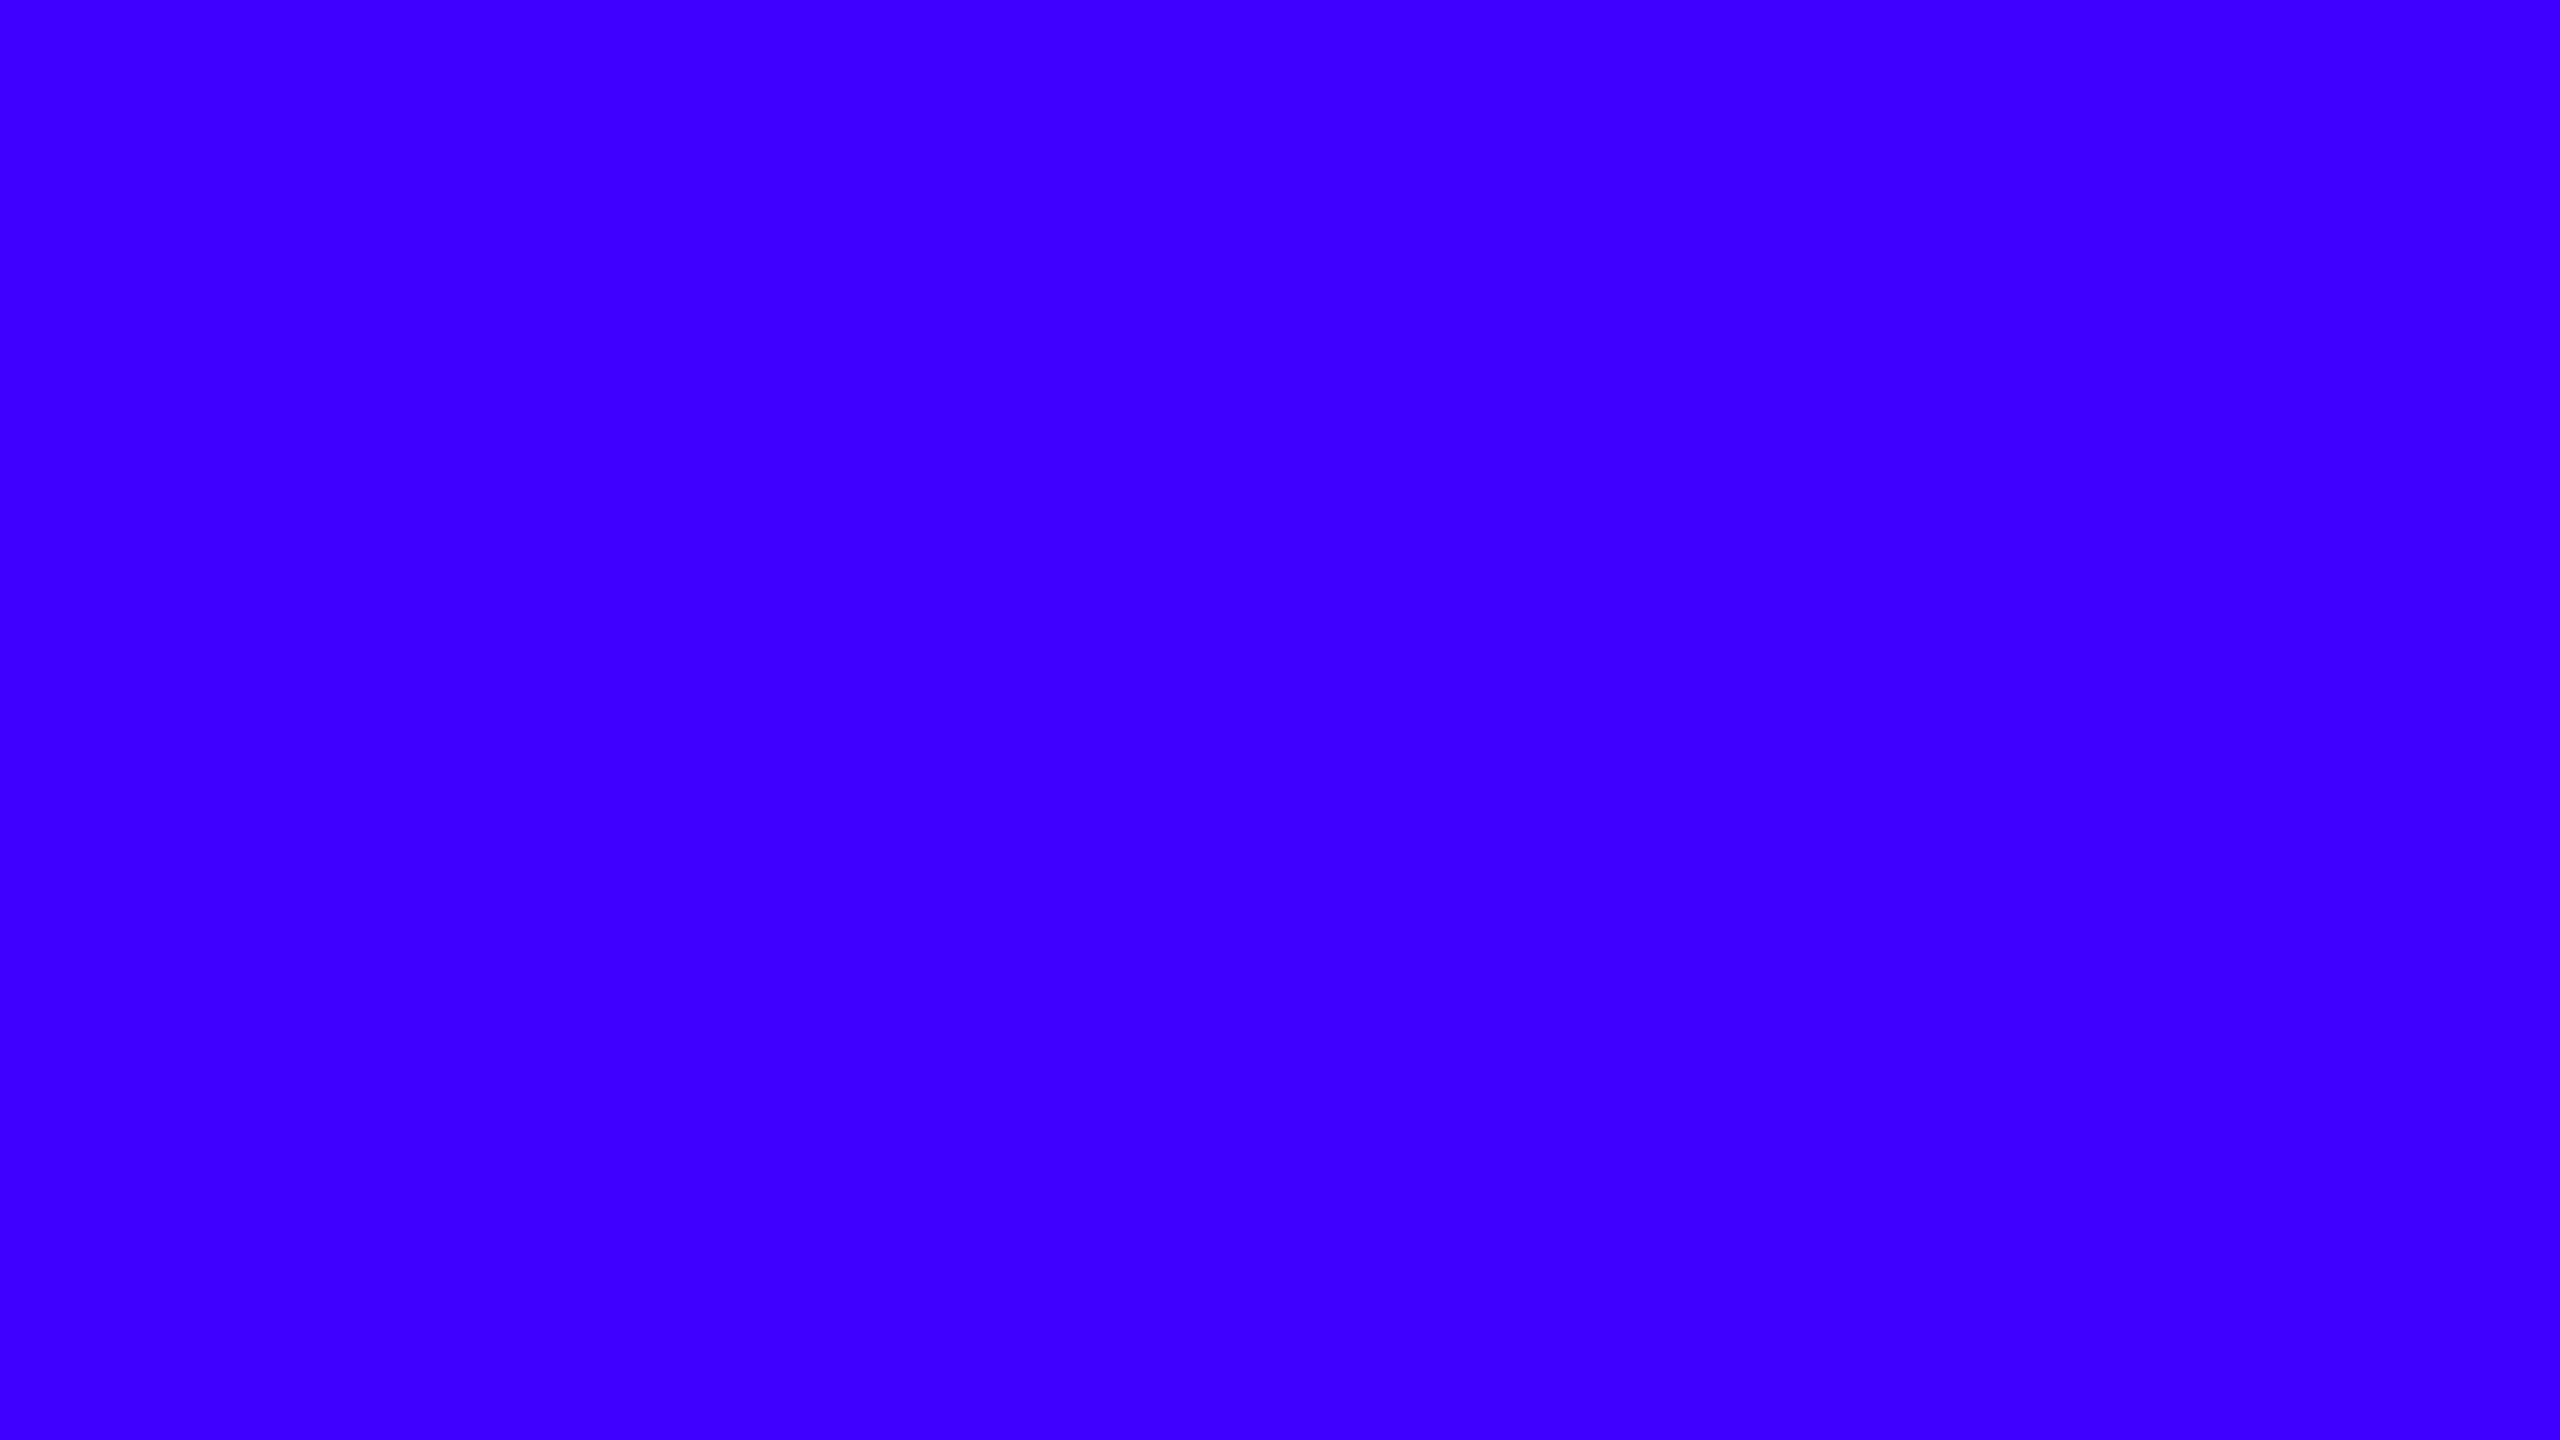 2560x1440 Electric Ultramarine Solid Color Background